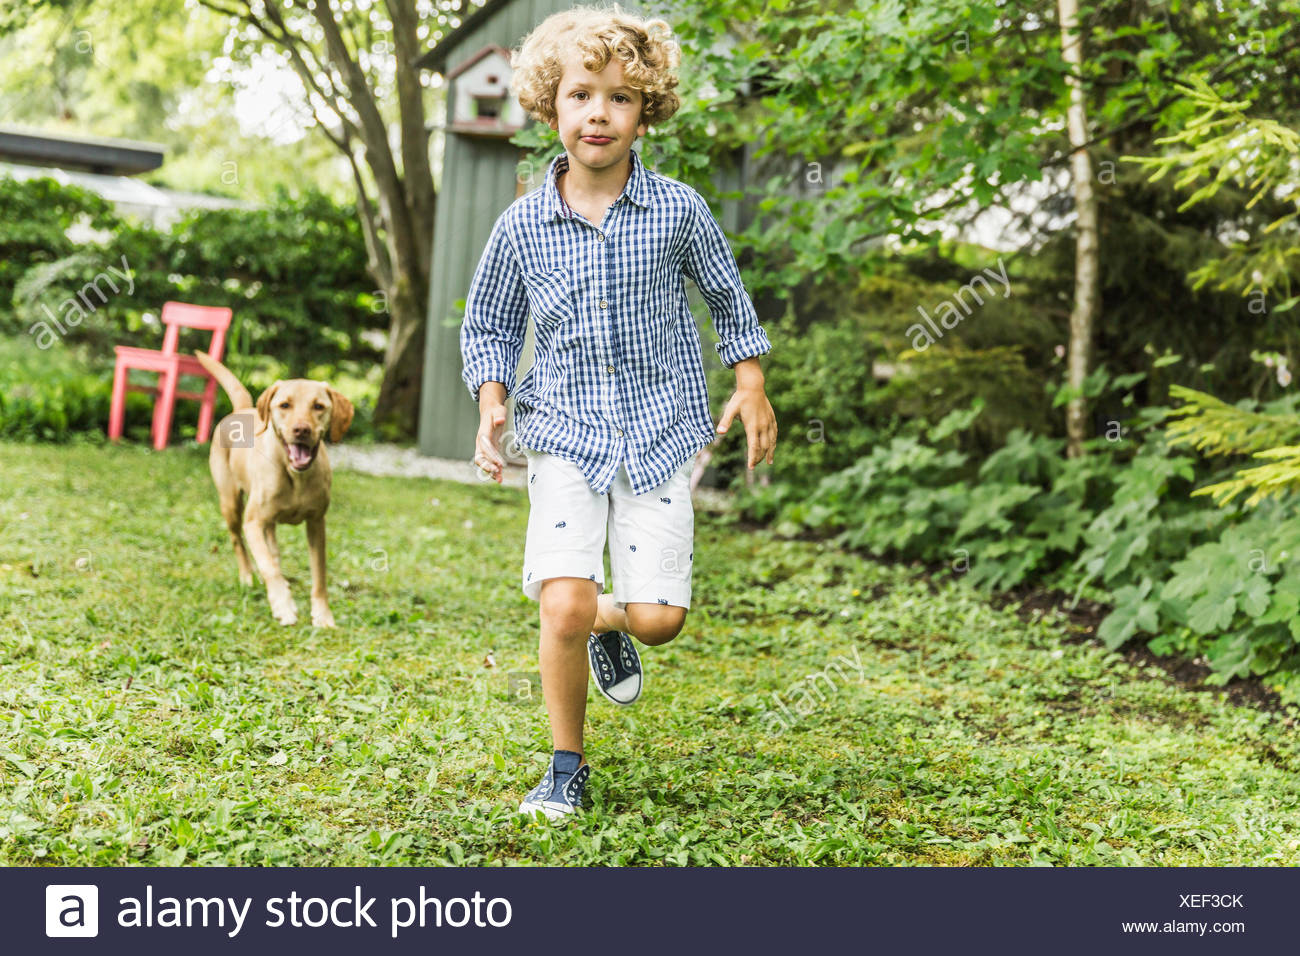 Boy running with dog in garden - Stock Image